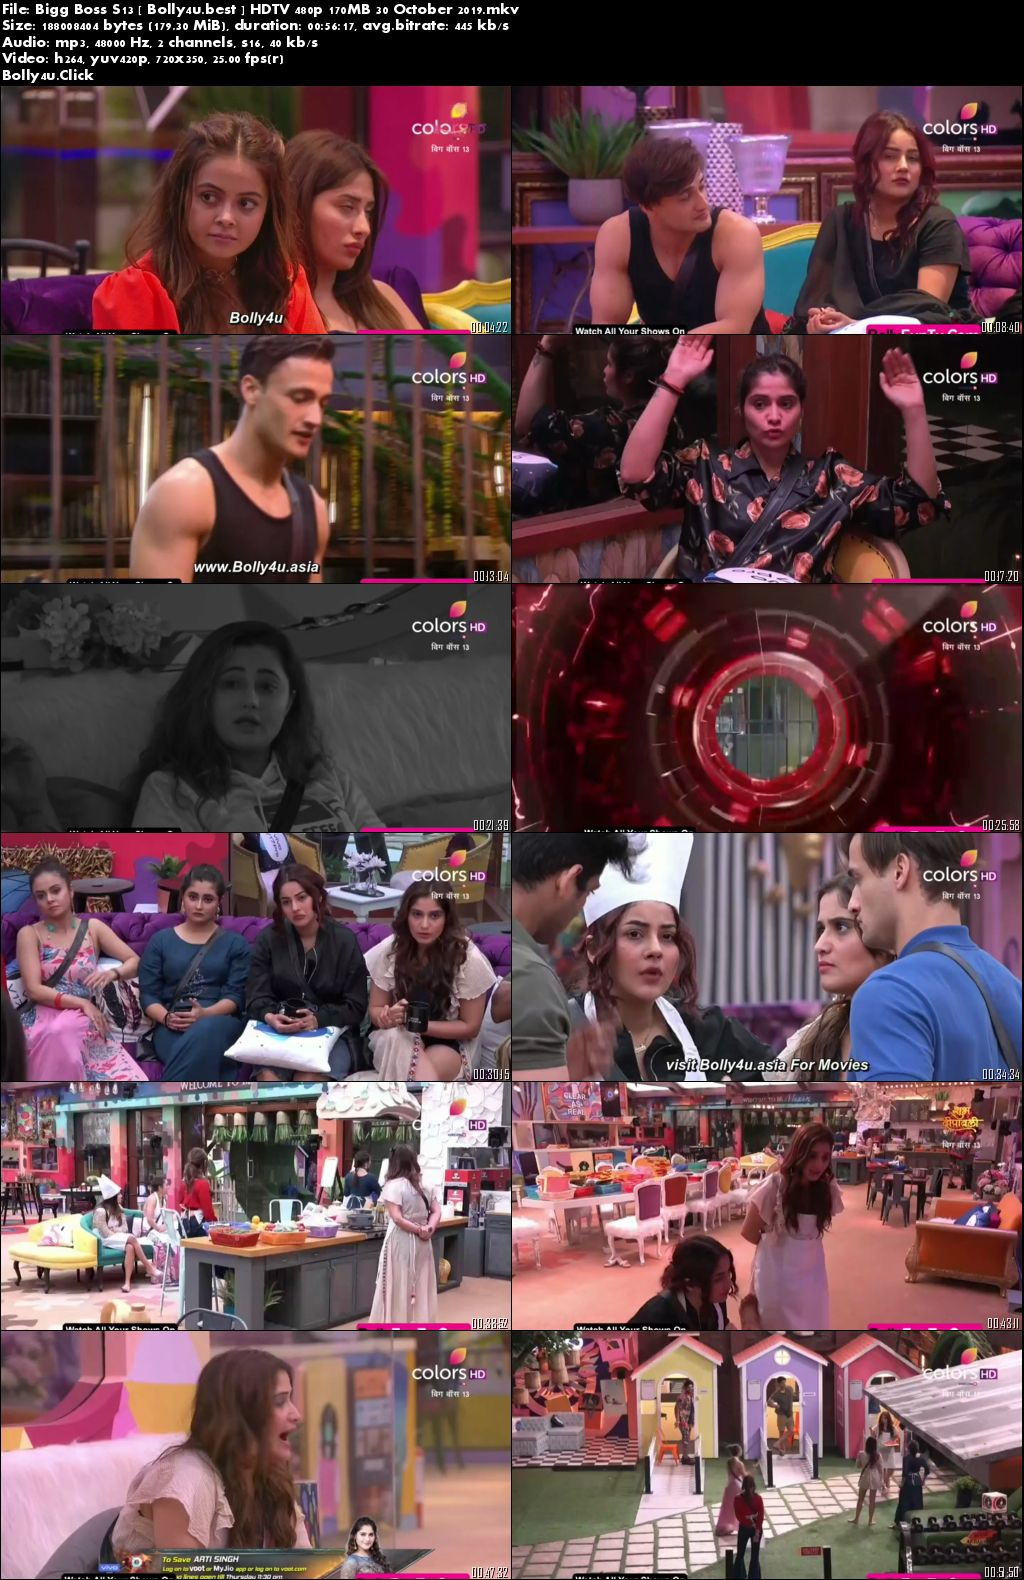 Bigg Boss S13 HDTV 480p 170MB 30 October 2019 Download